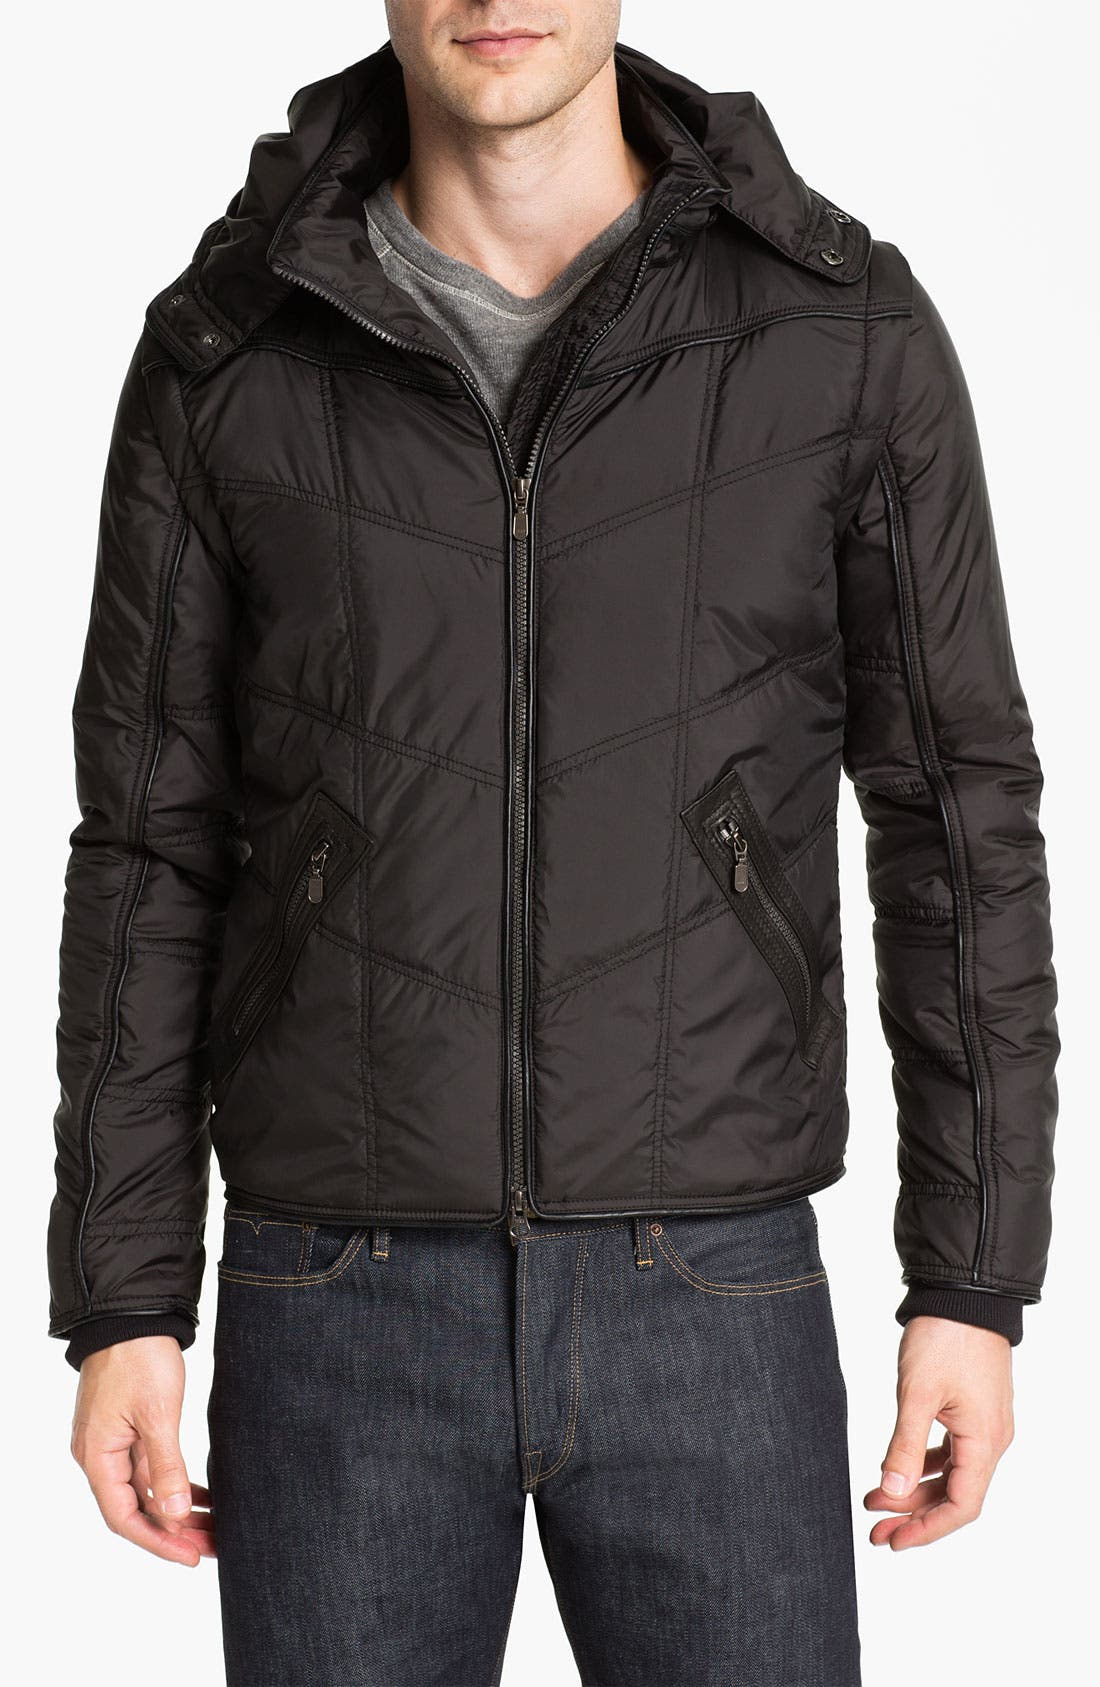 Main Image - Bod & Christensen Quilted Bomber Jacket